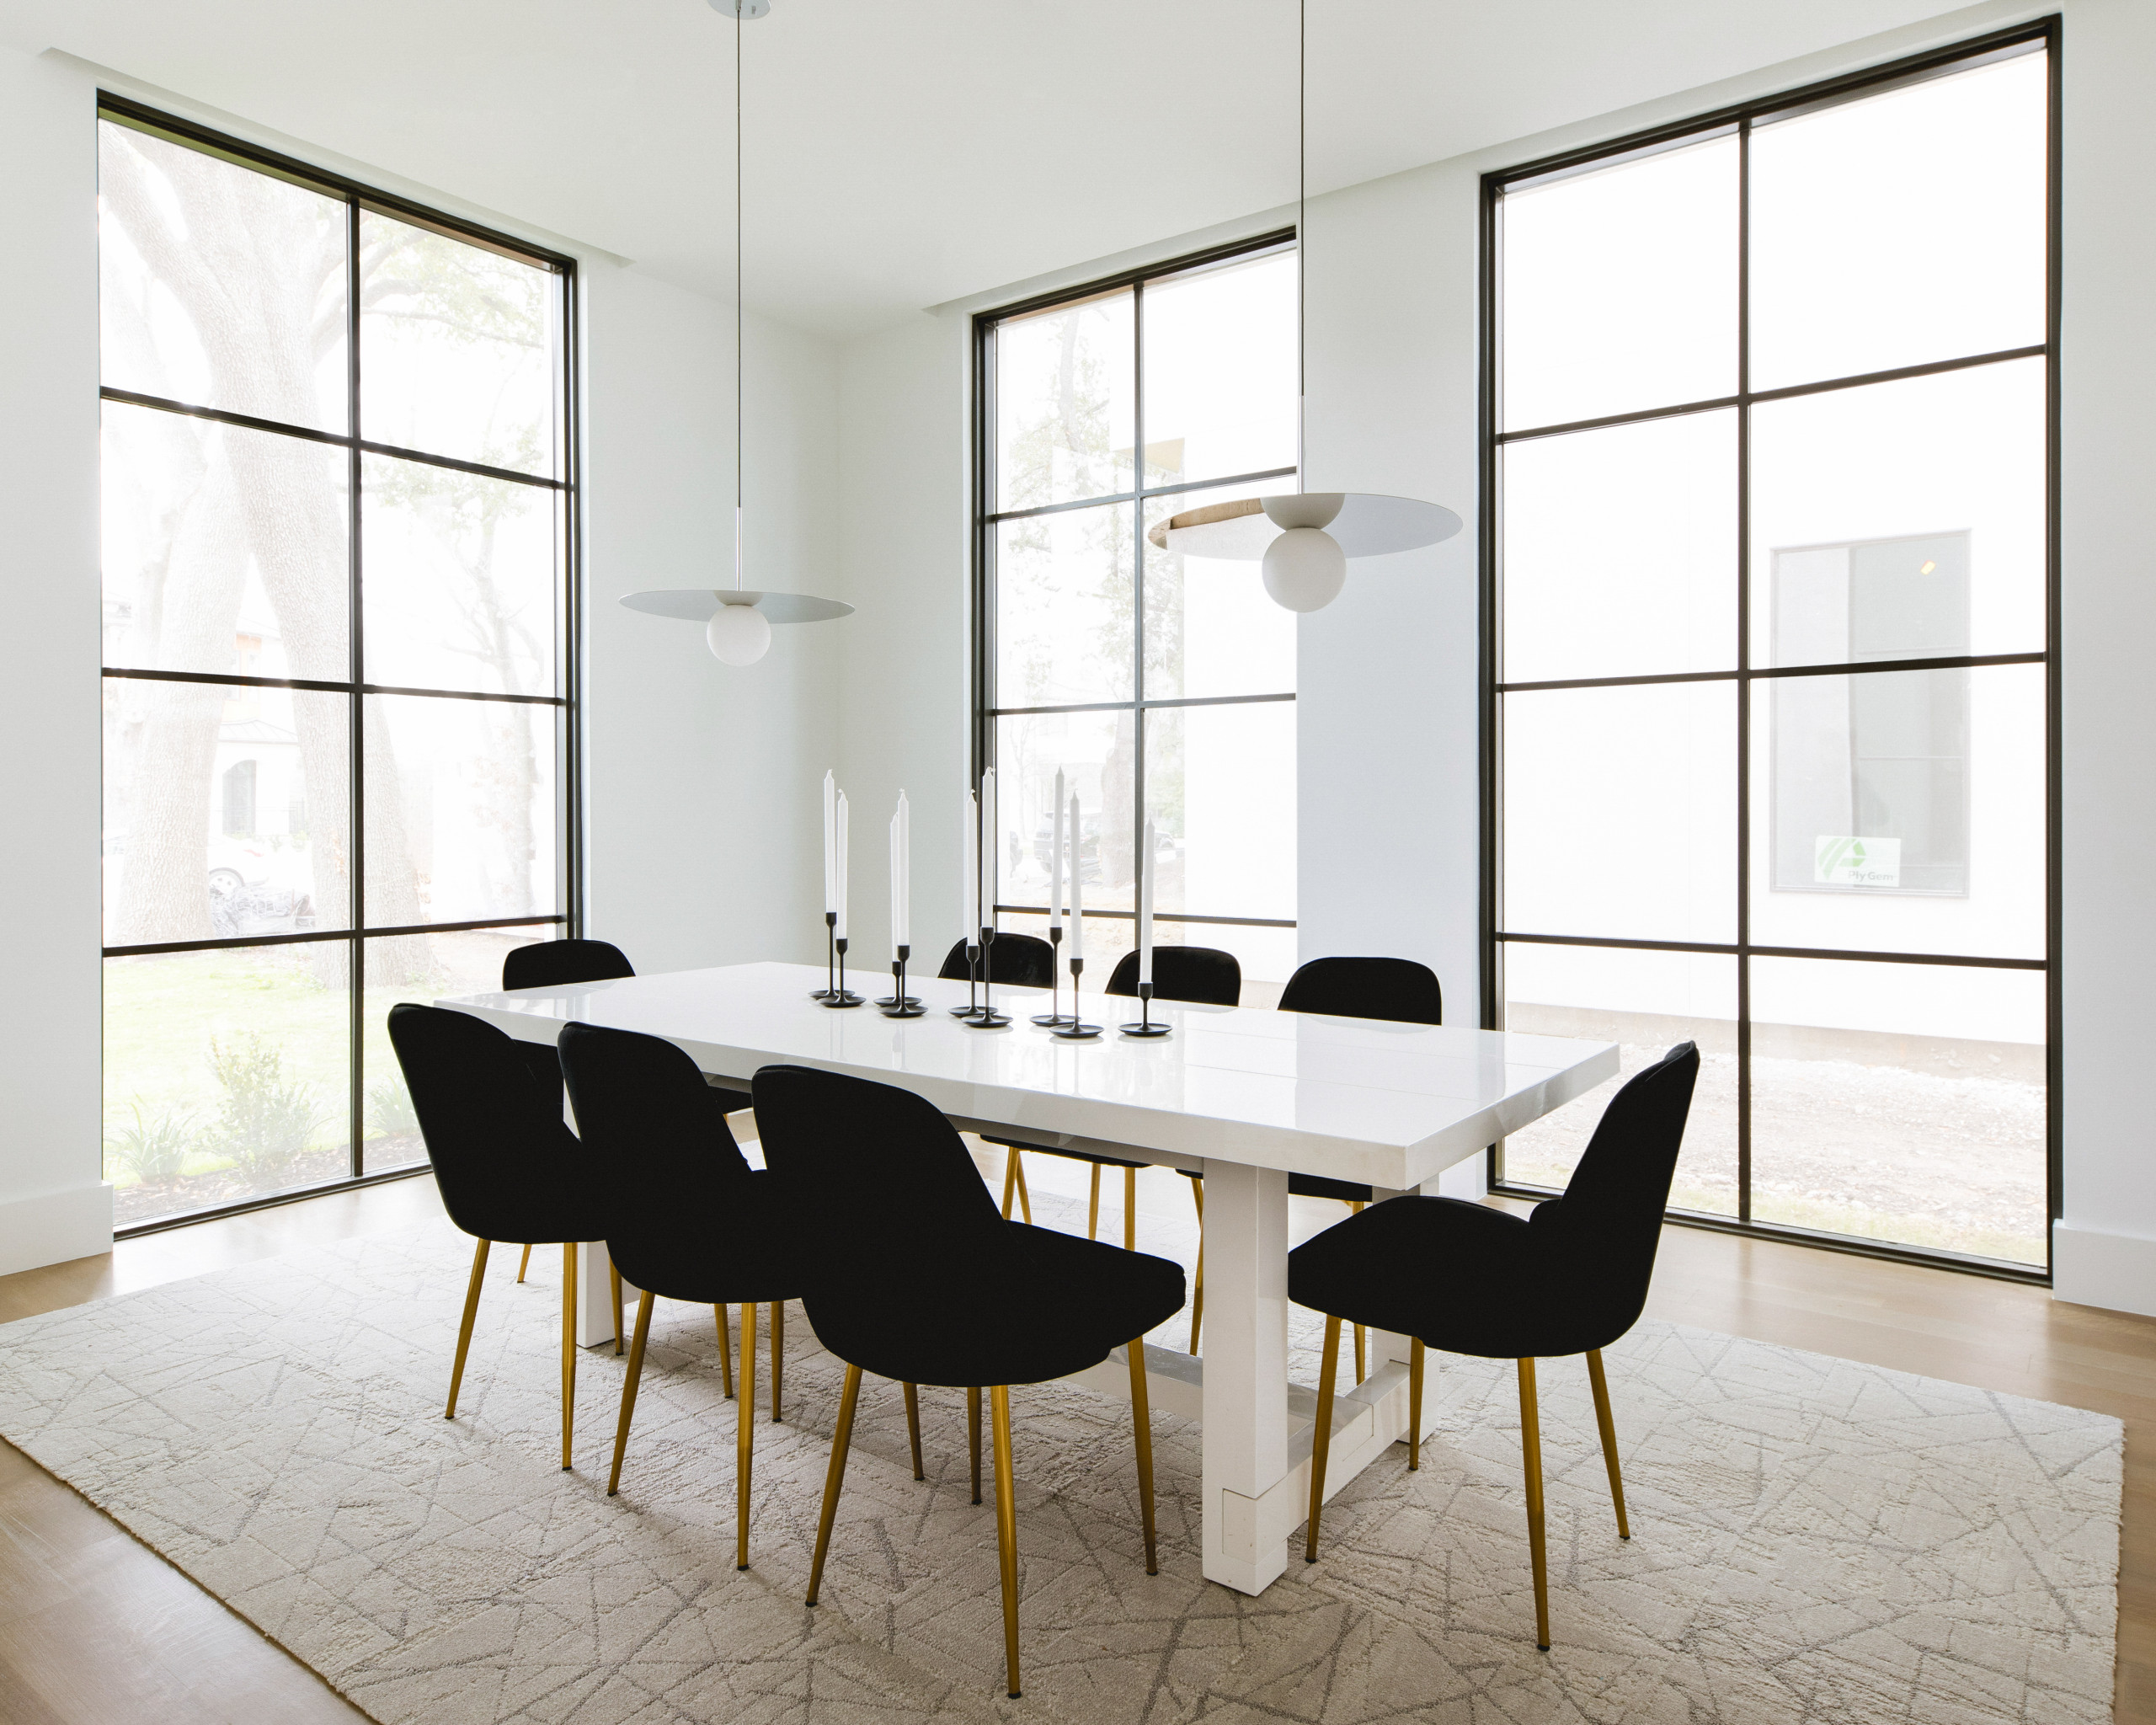 9 Beautiful Contemporary Dining Room Pictures & Ideas   September ...